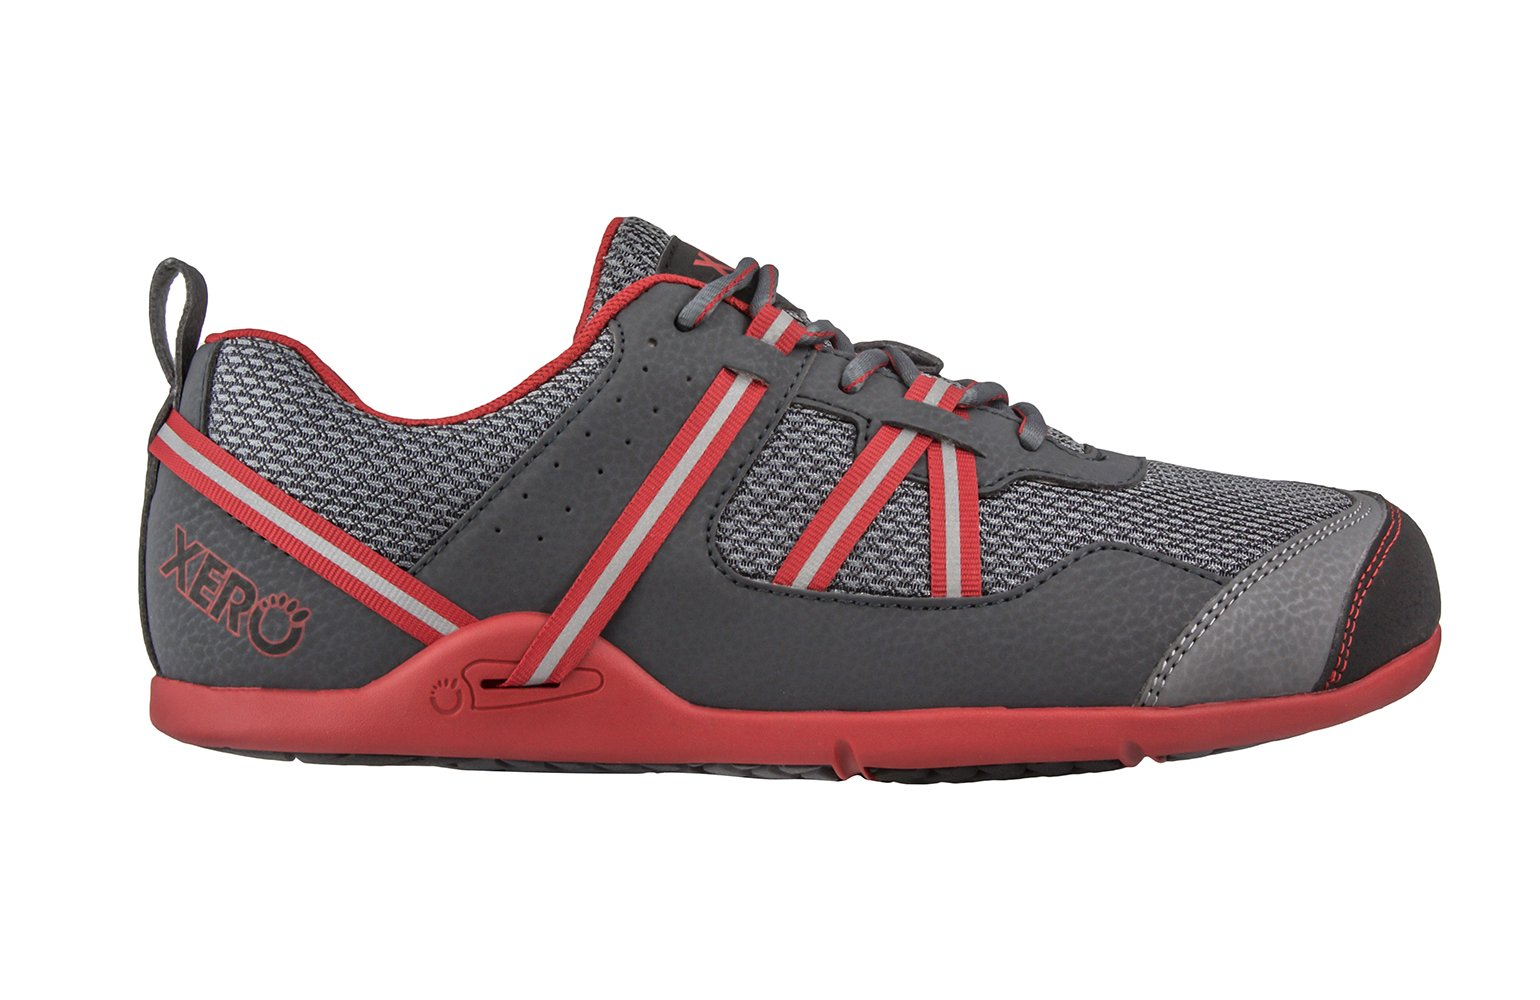 Xero Shoes Prio - Men's Minimalist Barefoot Trail and Road Running Shoe - Fitness, Athletic Zero Drop Sneaker - Charcoal Red by Xero Shoes (Image #2)